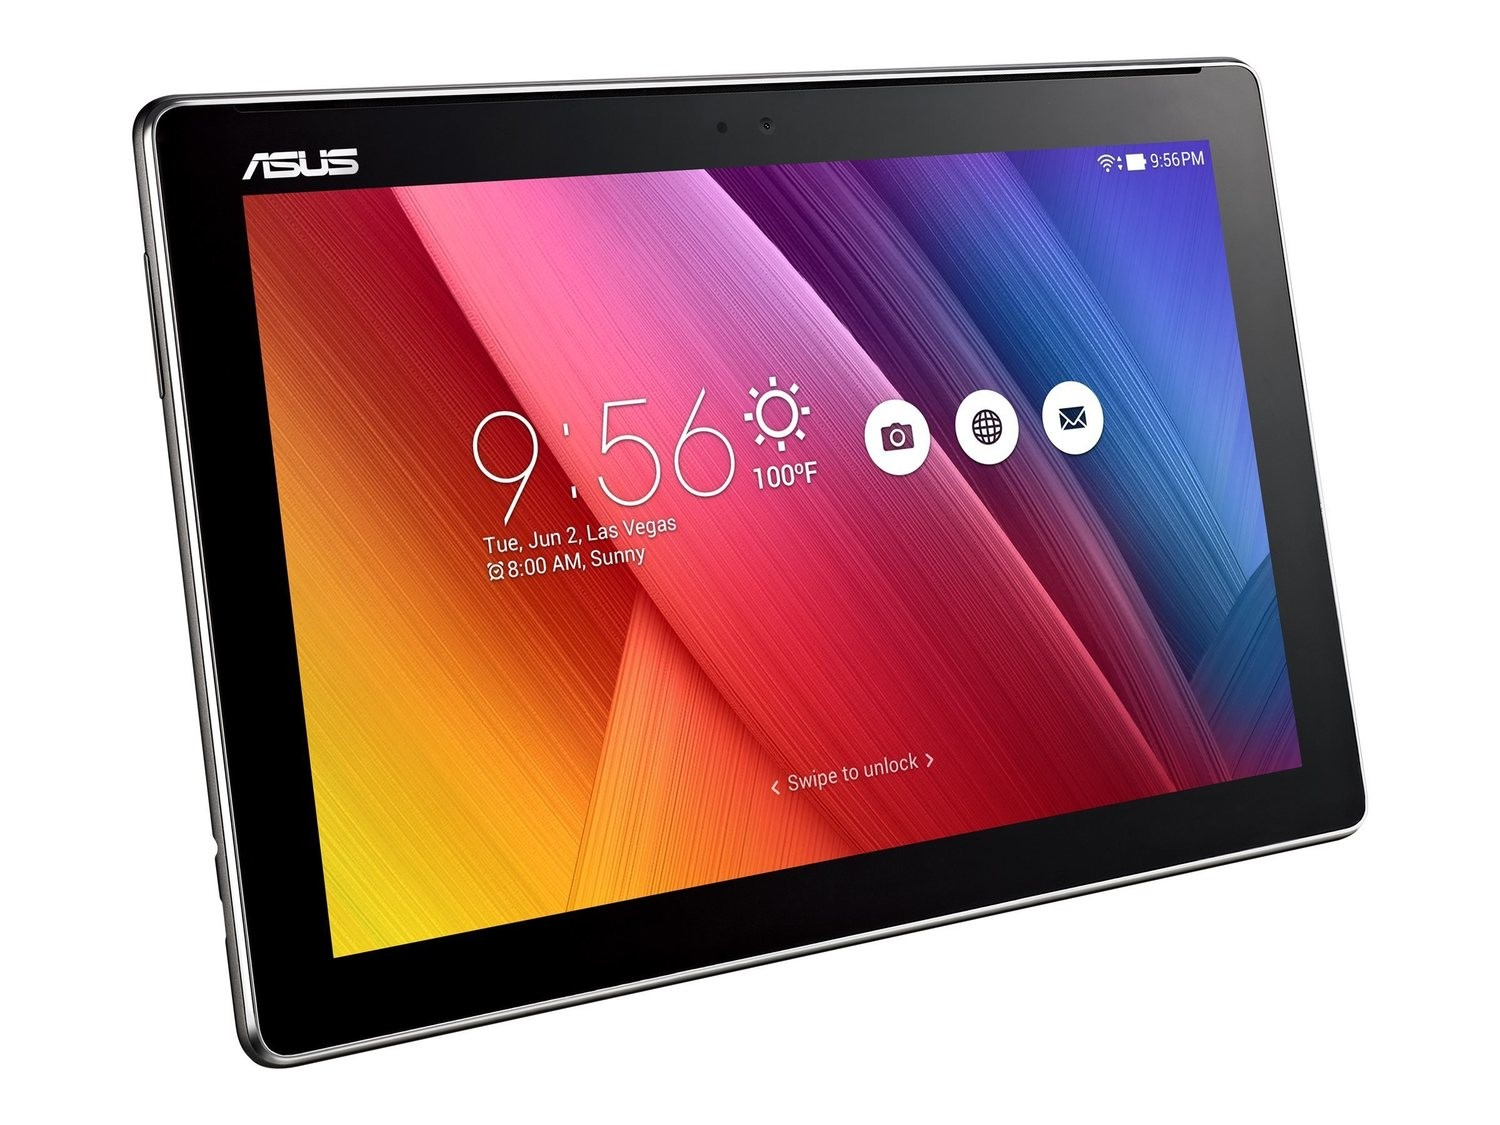 "ASUS ZenPad 10 Z300M - Quad Core / 2GB Ram/16GB Storage/Android 6/ 10"" 1280x800 Display"